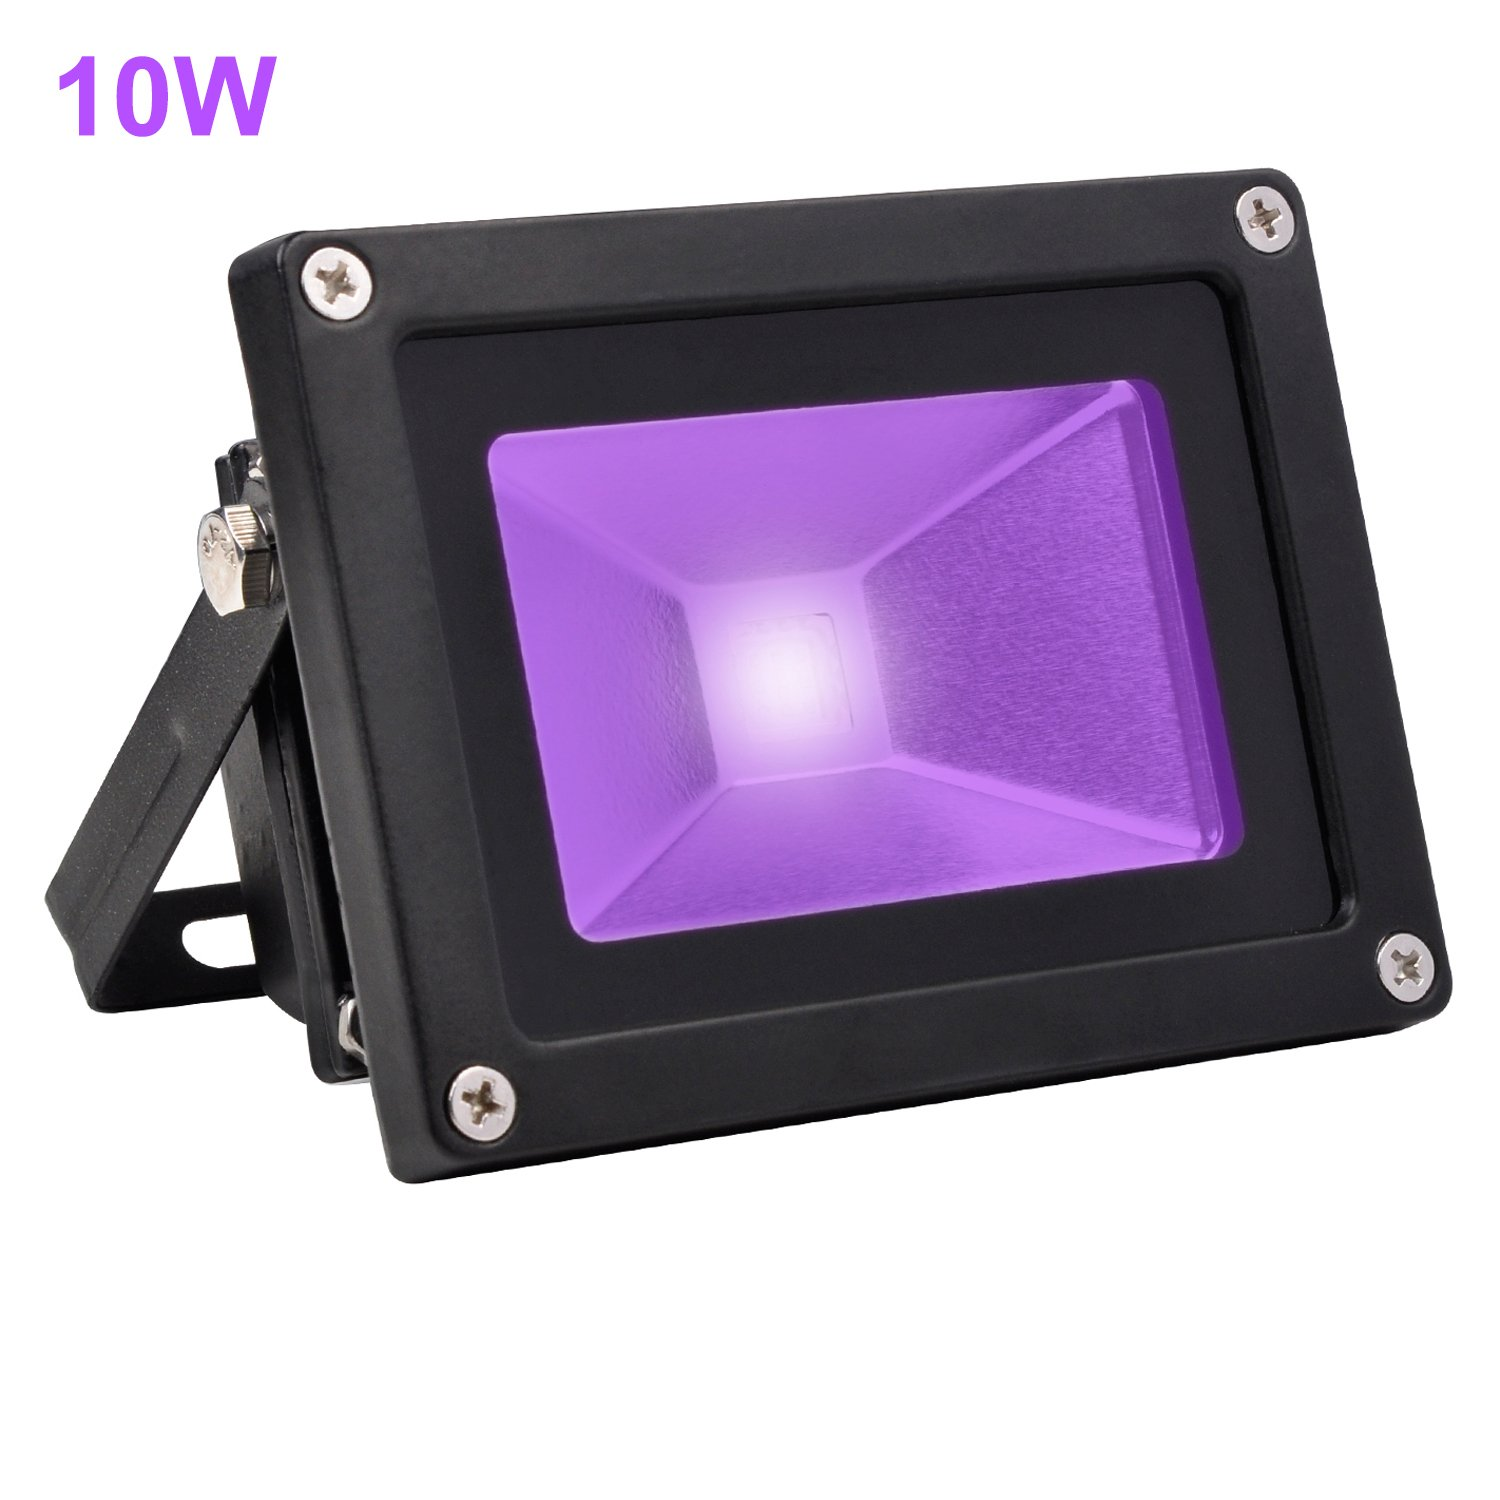 Black Light Flood Lamp, UV Blacklight 10W Waterproof for Party Supplies Stage Lighting Aquarium Indoor Outdoor Garden Hotel Yard Park Glow in The Dark-Amarle